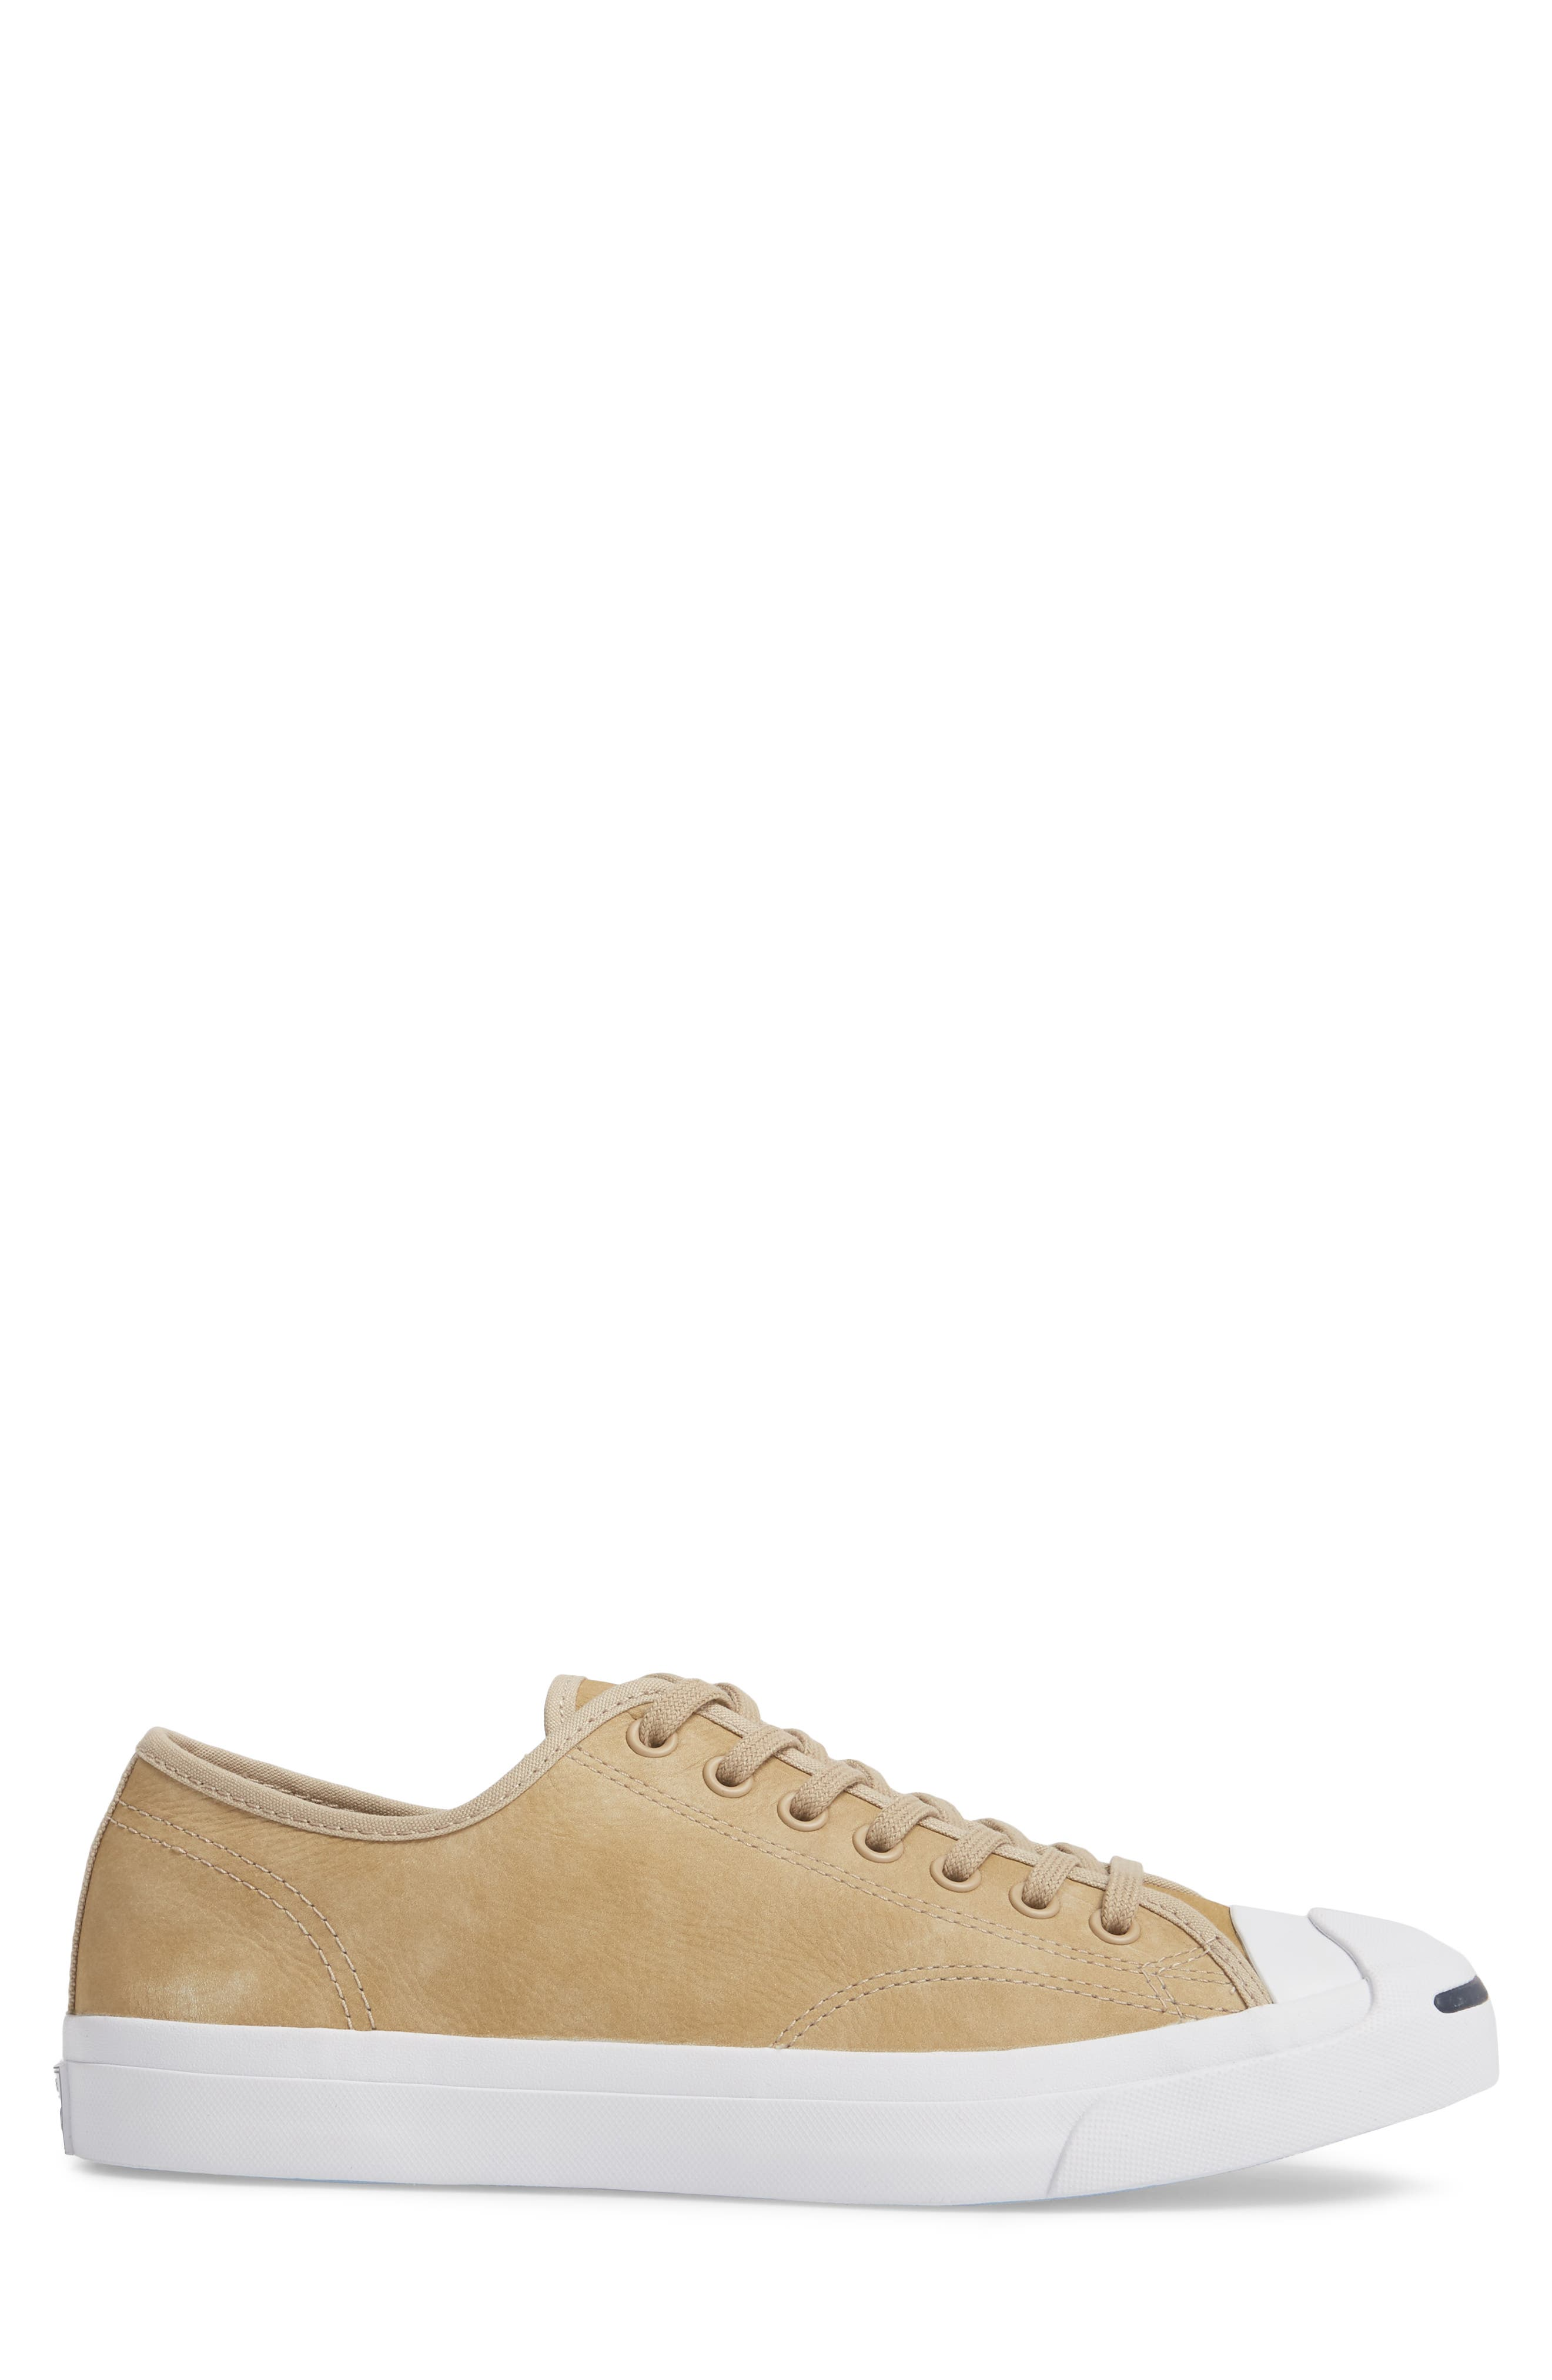 'Jack Purcell - Jack' Sneaker,                             Alternate thumbnail 3, color,                             270